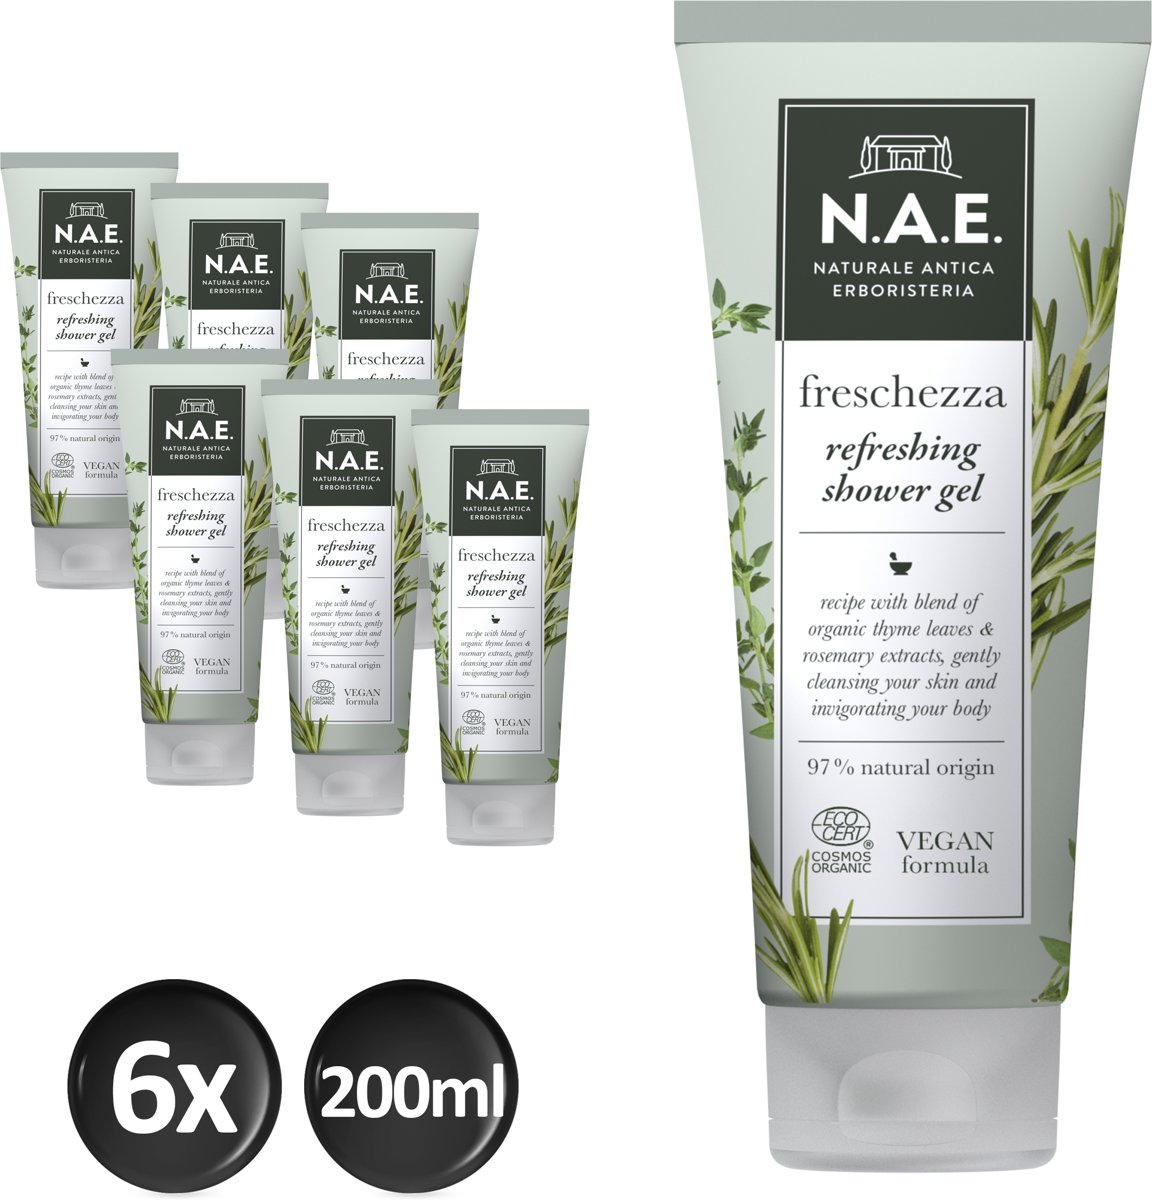 N.A.E. Shower gel Herbal 6x